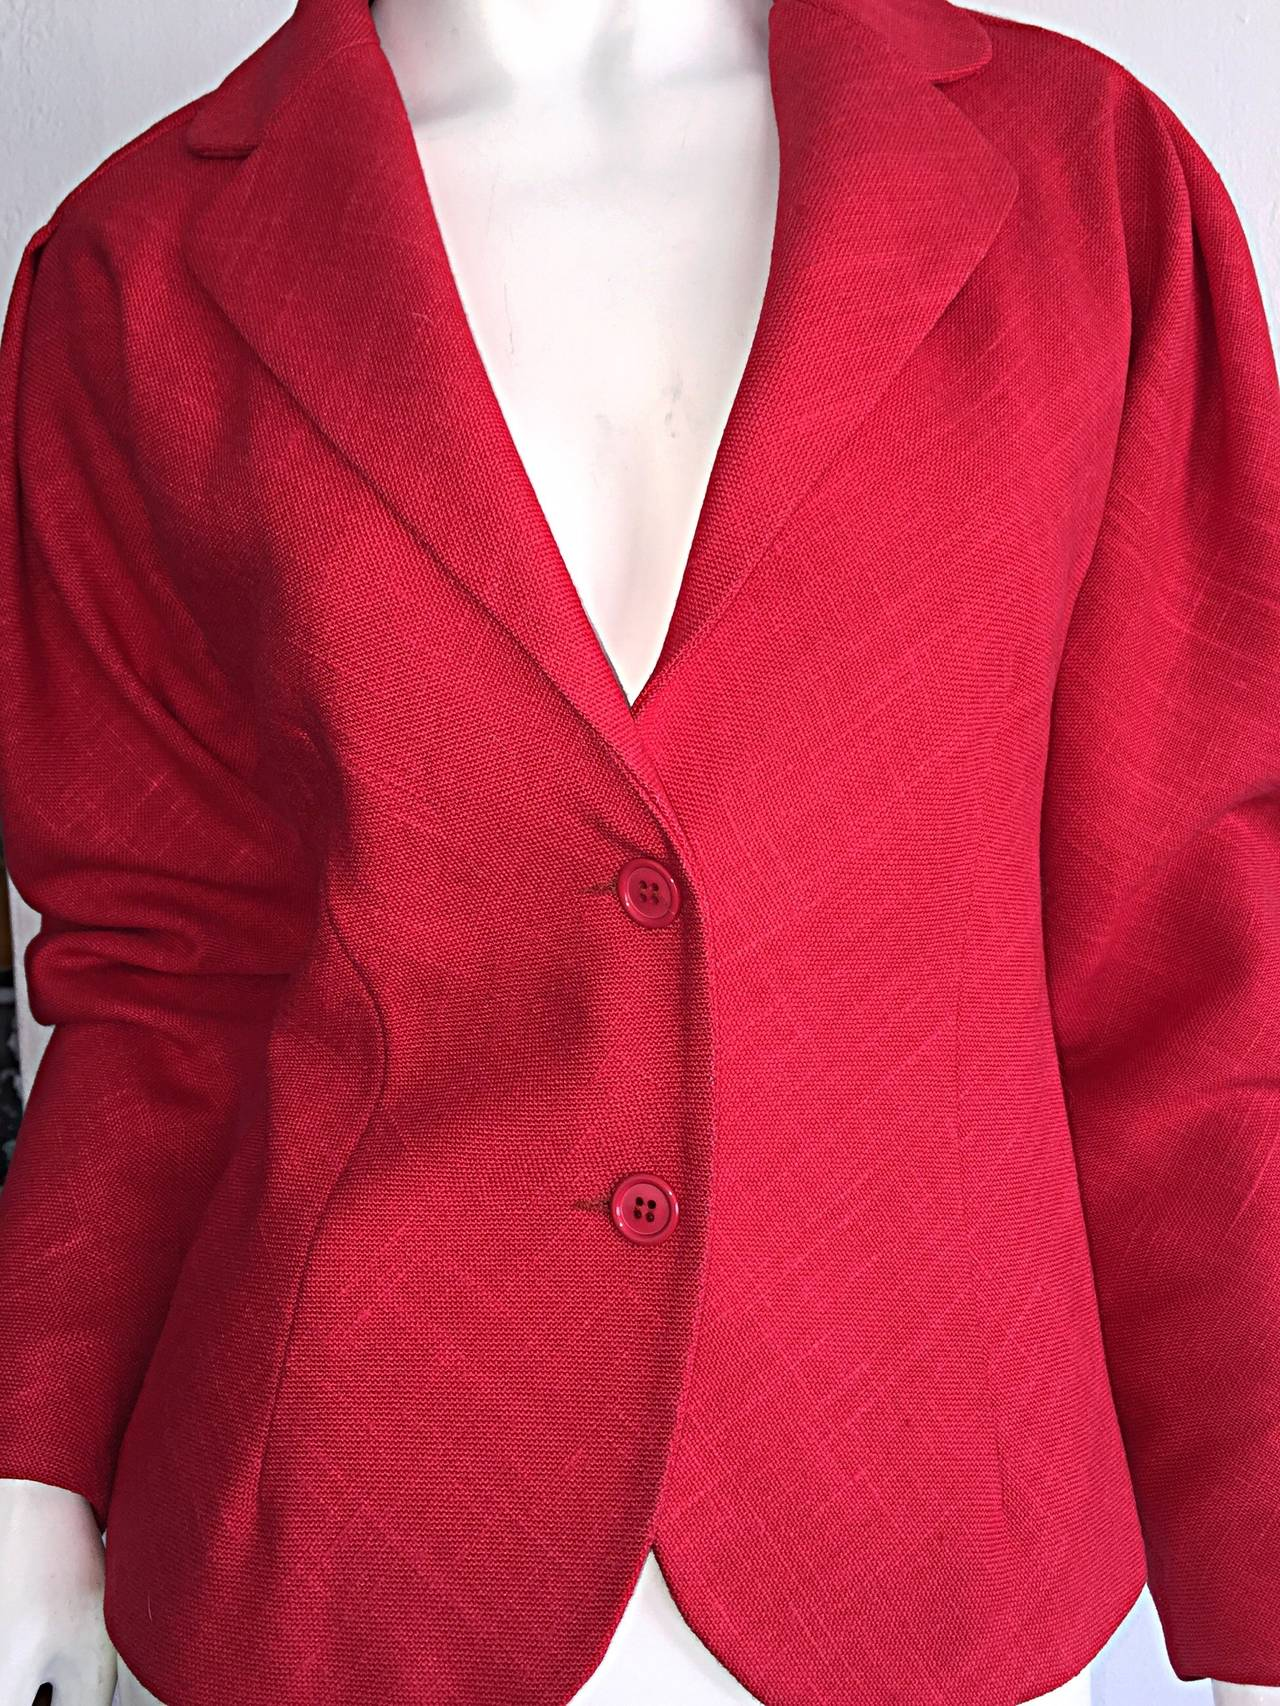 Vintage Halston Candy Apple Red Fitted Linen Blazer Jacket For Sale 2